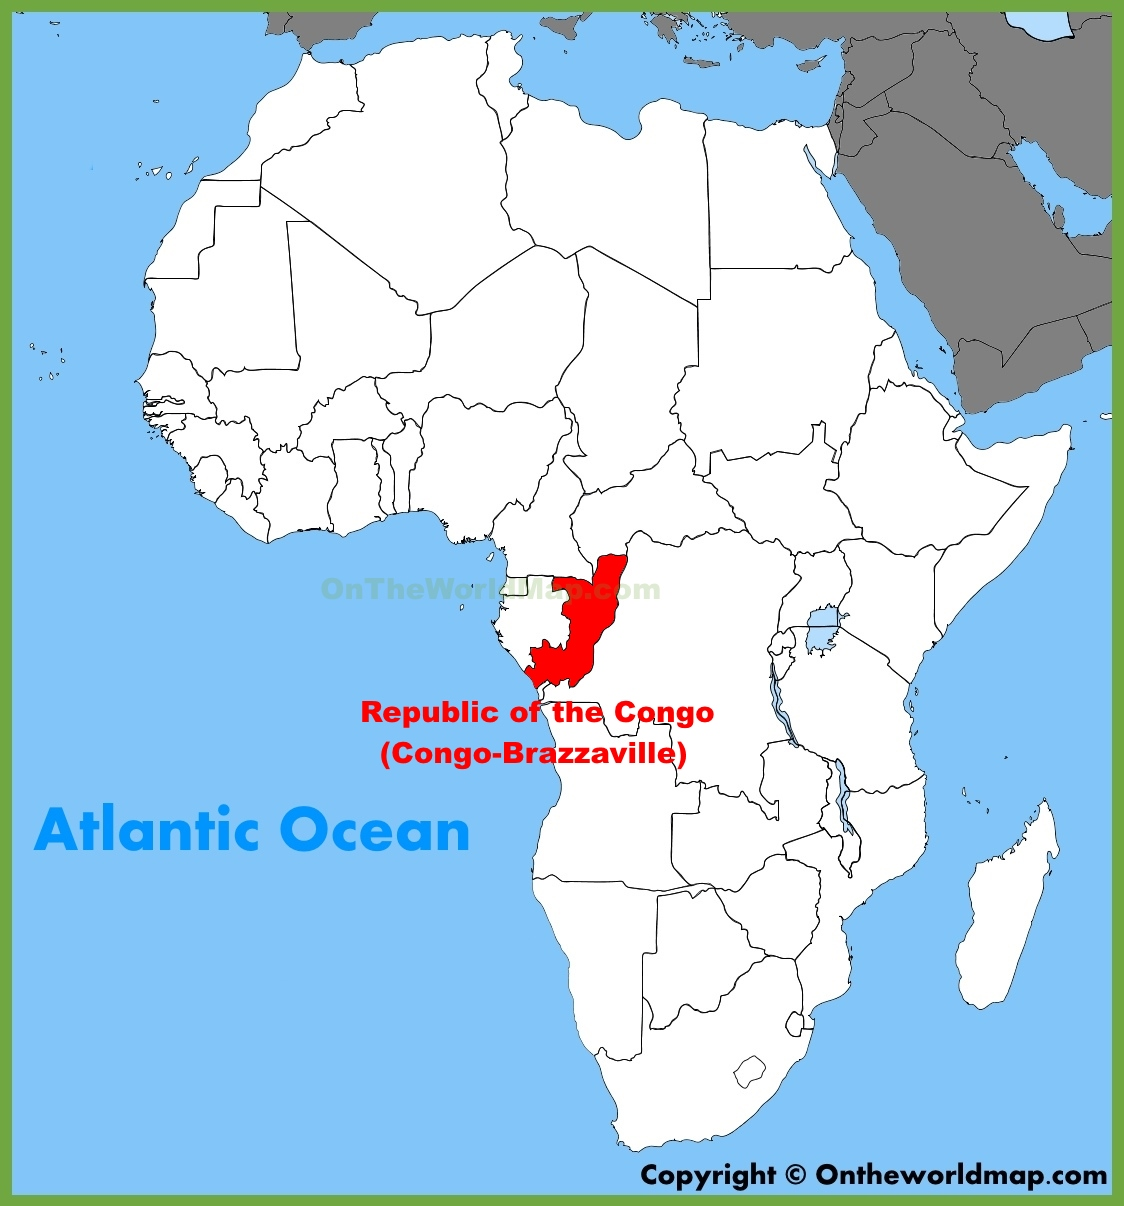 http://ontheworldmap.com/republic-of-the-congo/republic-of-the-congo-location-on-the-africa-map.jpg